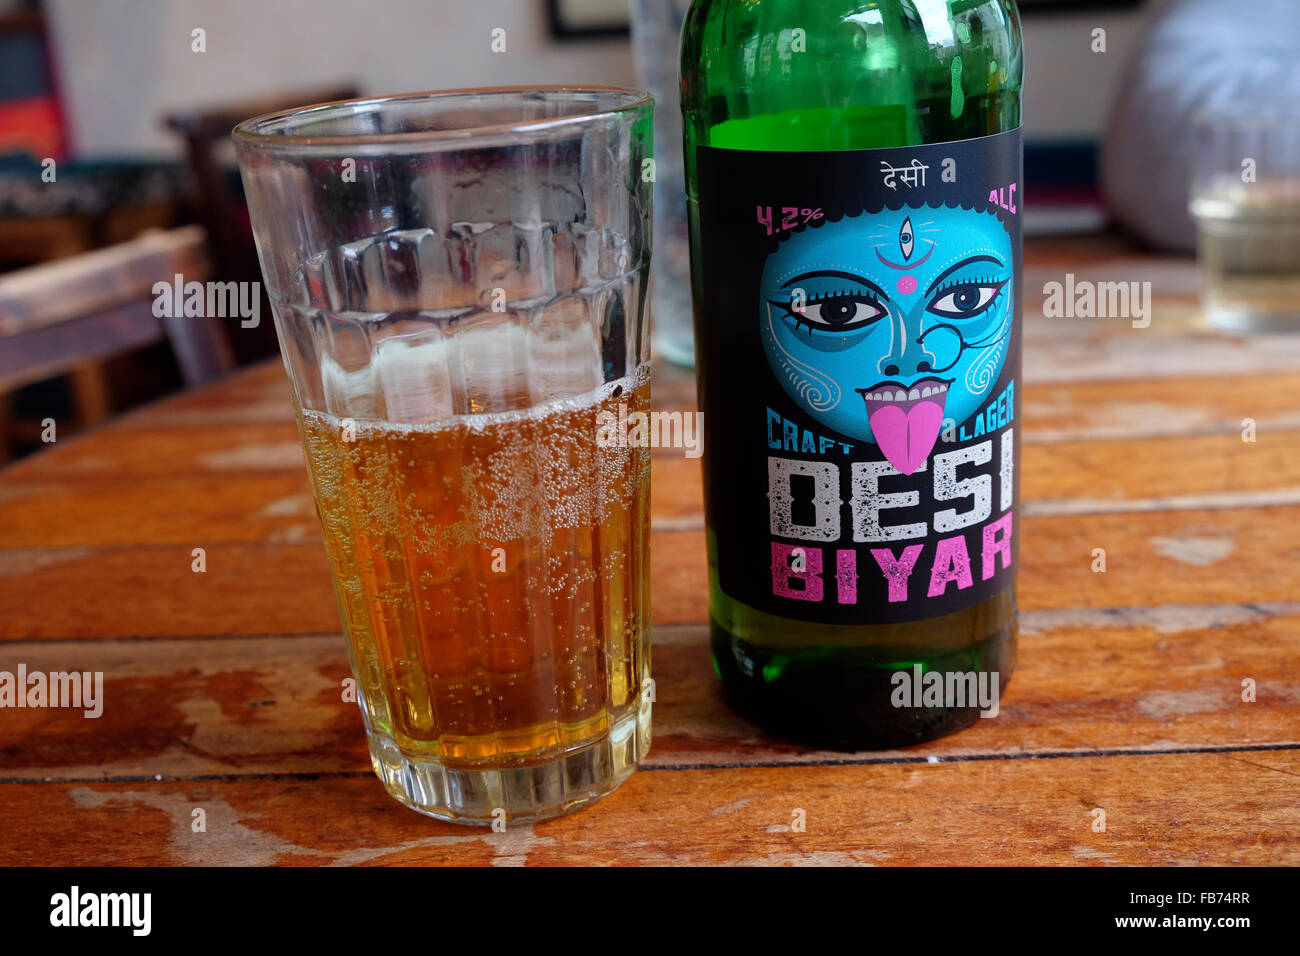 Desi Biyar Indian craft lager beer brewed by Arkells Brewery in UK - Stock Image